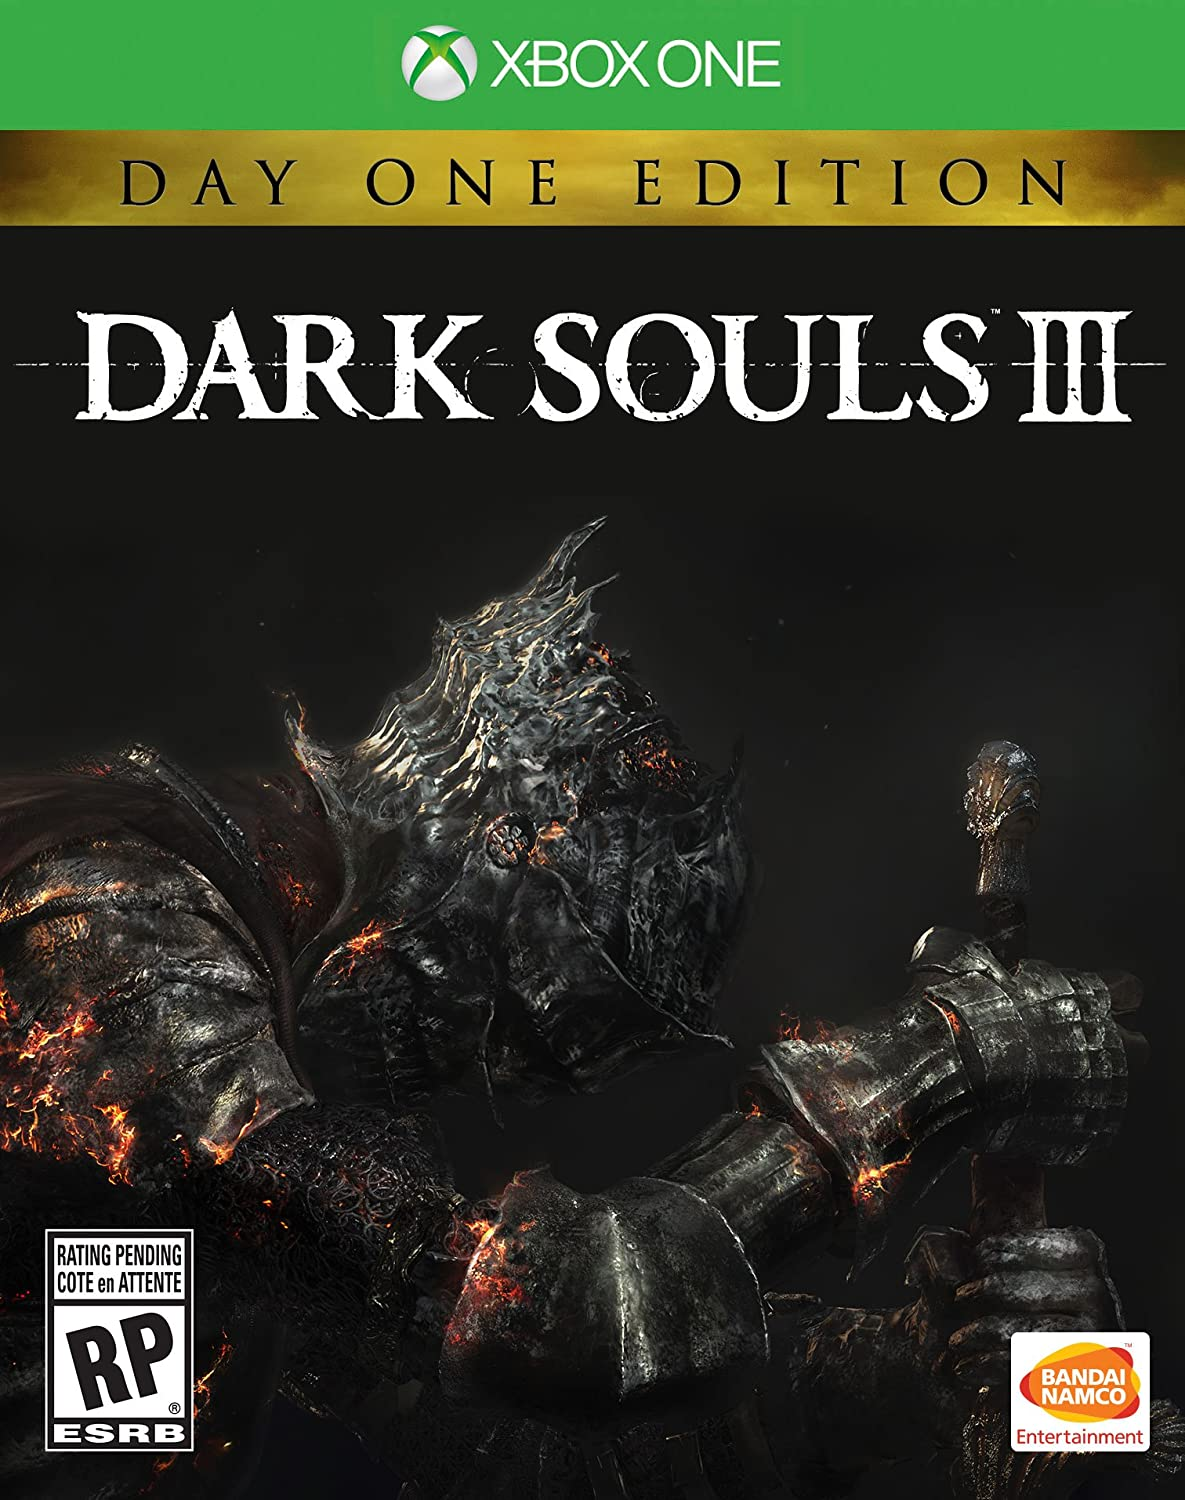 dark souls iii cover art revealed by amazon store page. Black Bedroom Furniture Sets. Home Design Ideas